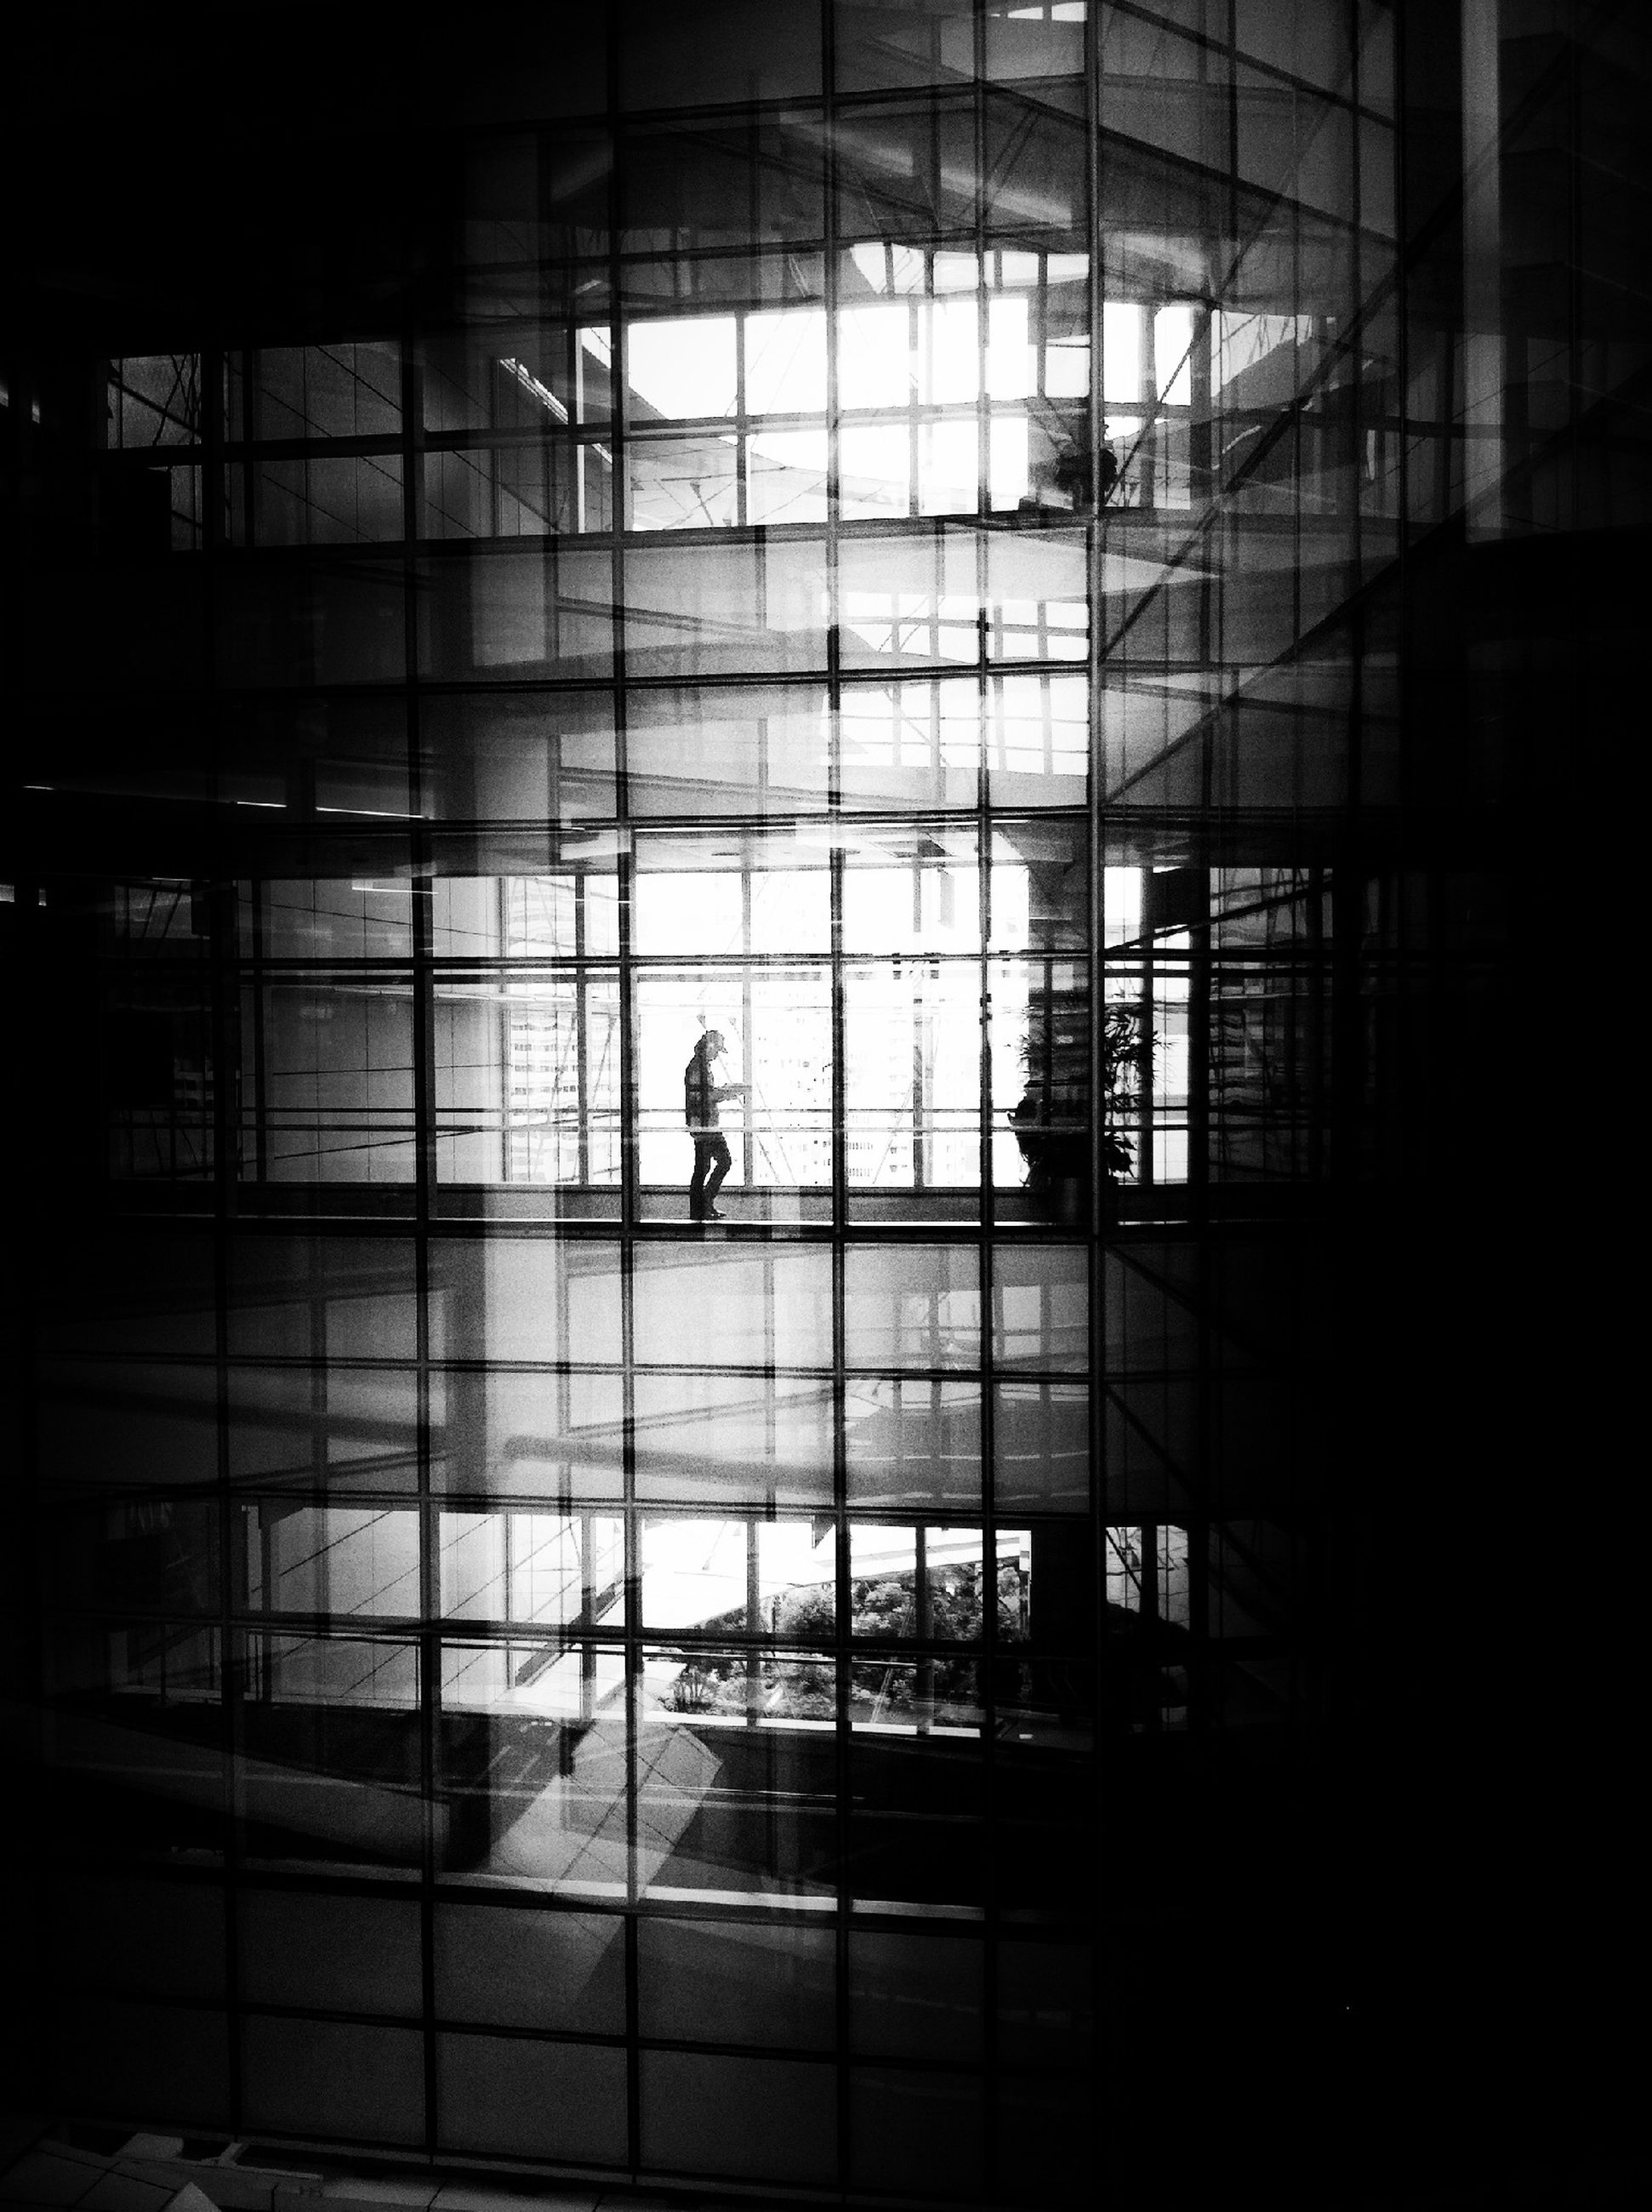 architecture, window, built structure, glass - material, building exterior, indoors, reflection, building, men, transparent, silhouette, city, modern, glass, walking, city life, unrecognizable person, day